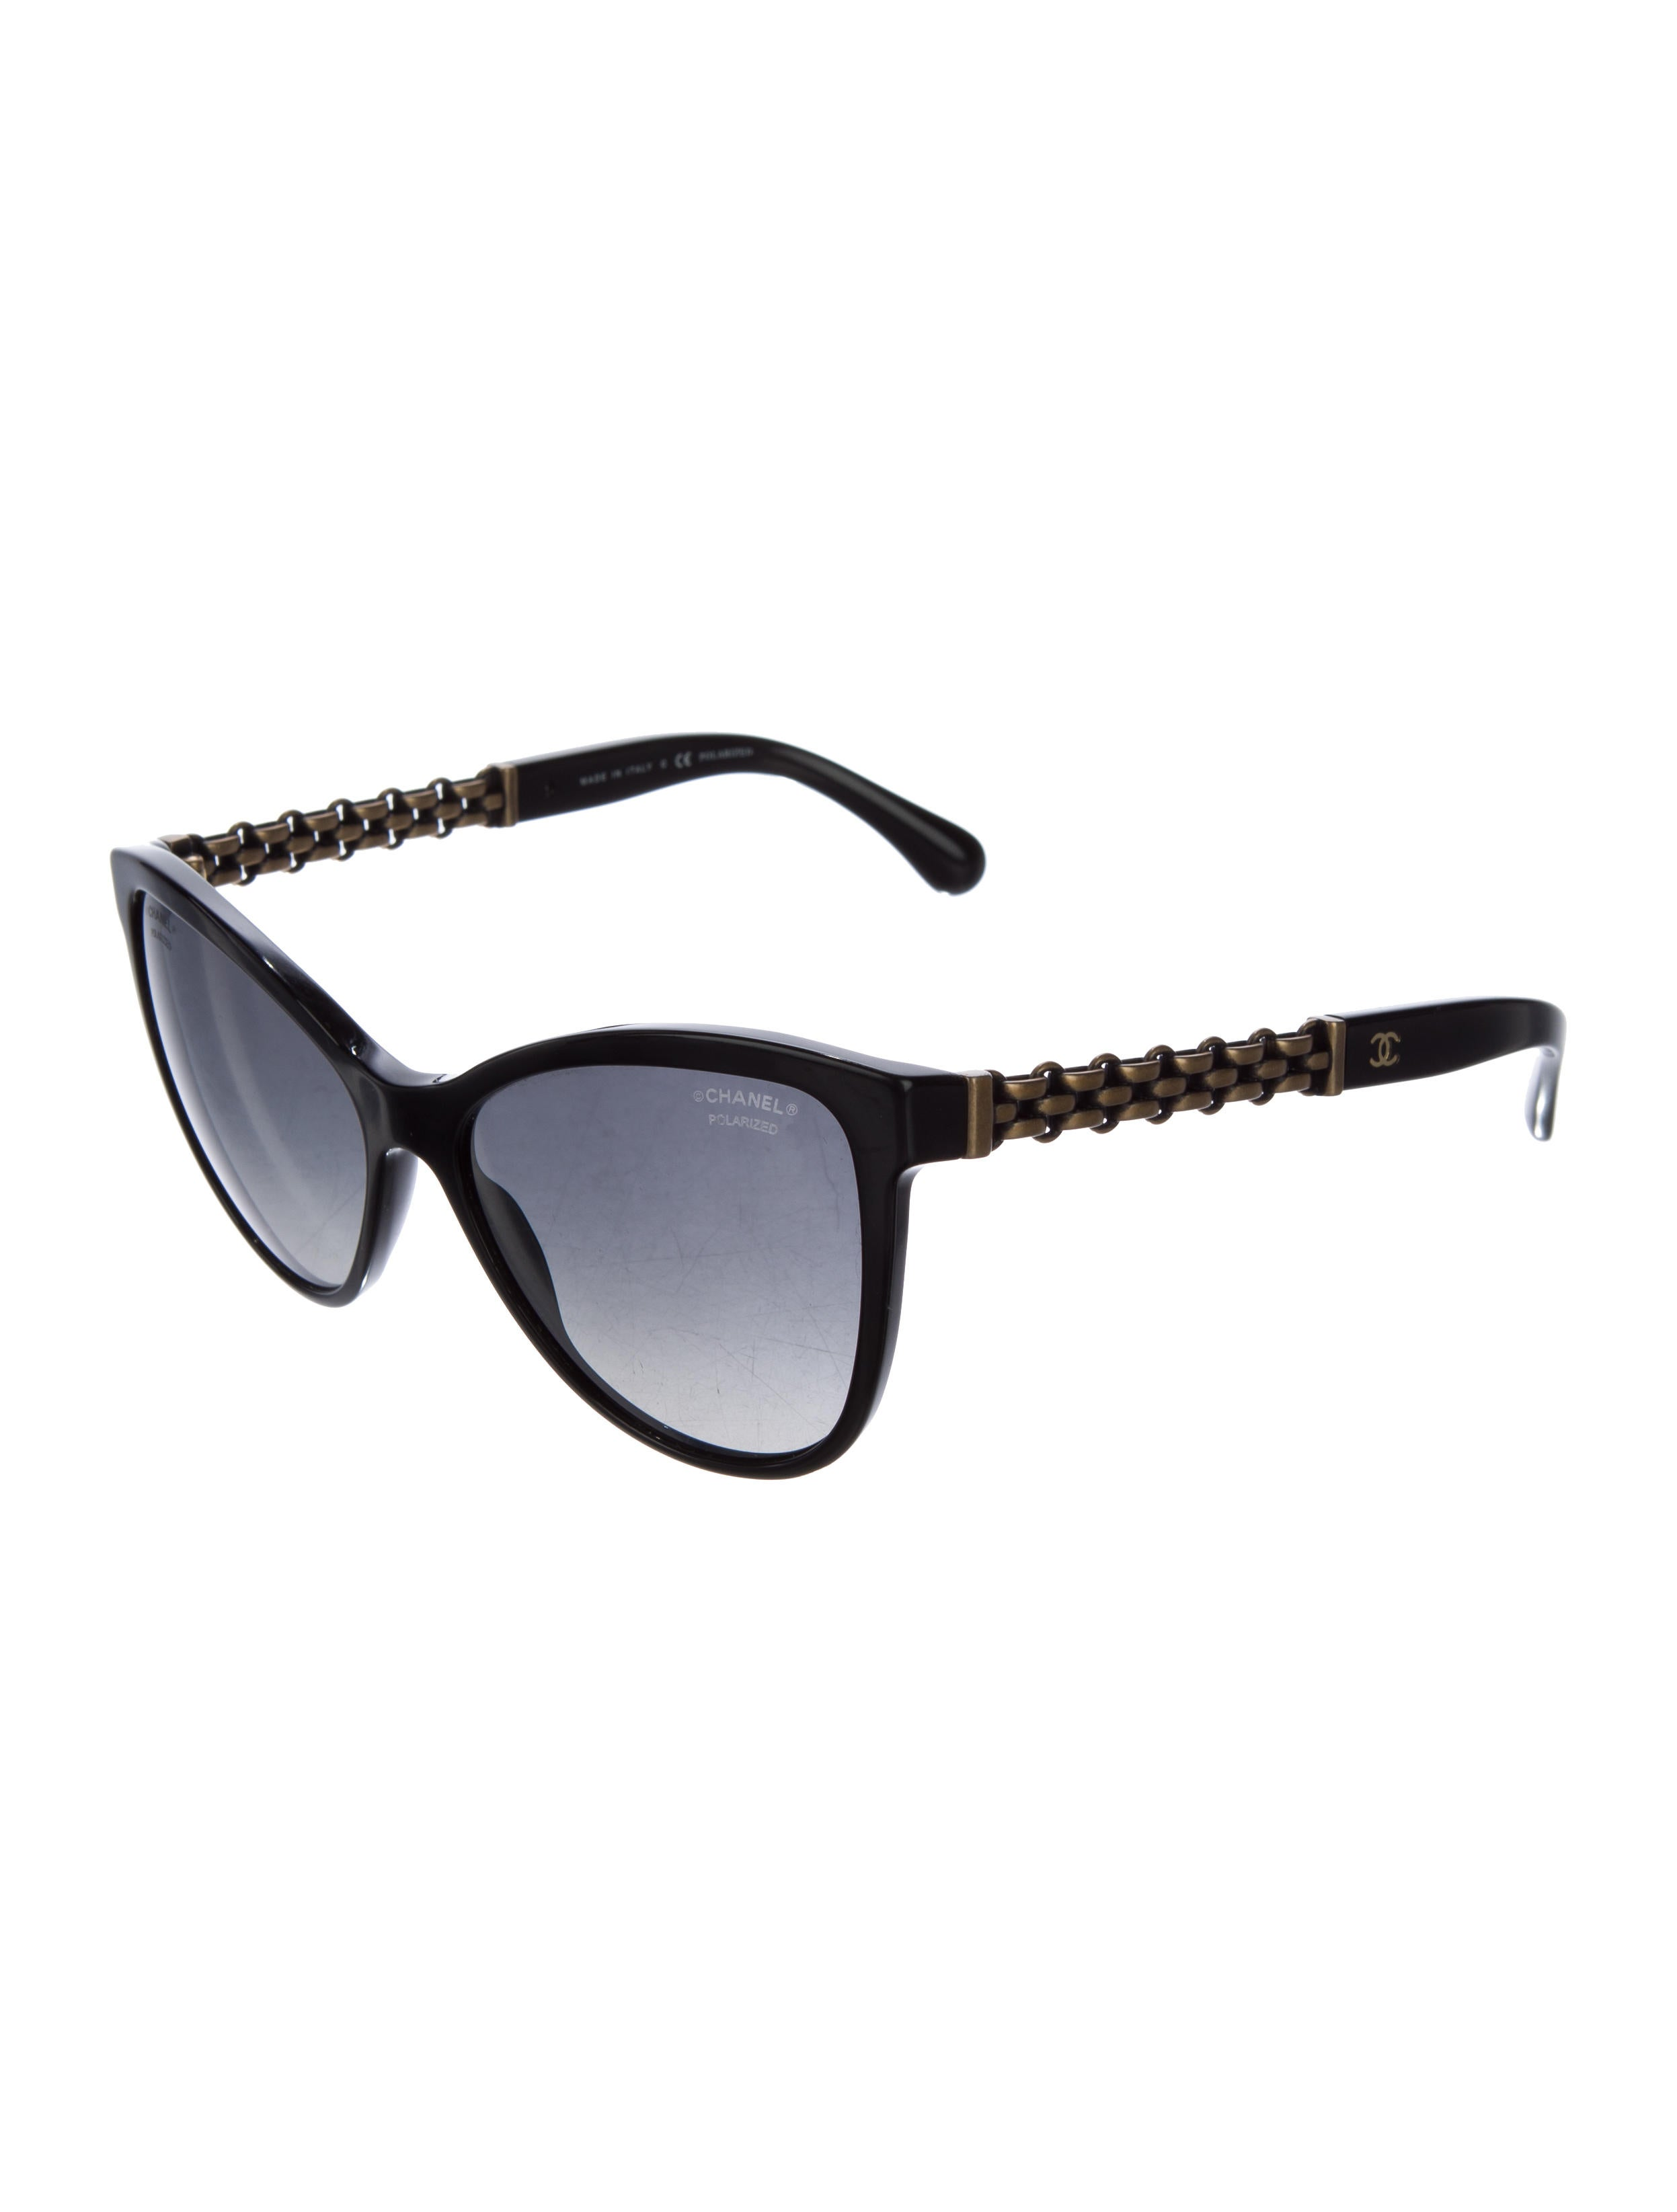 Chanel Bijou Chain Sunglasses Accessories CHA140459  : CHA1404592enlarged from www.therealreal.com size 2494 x 3290 jpeg 133kB